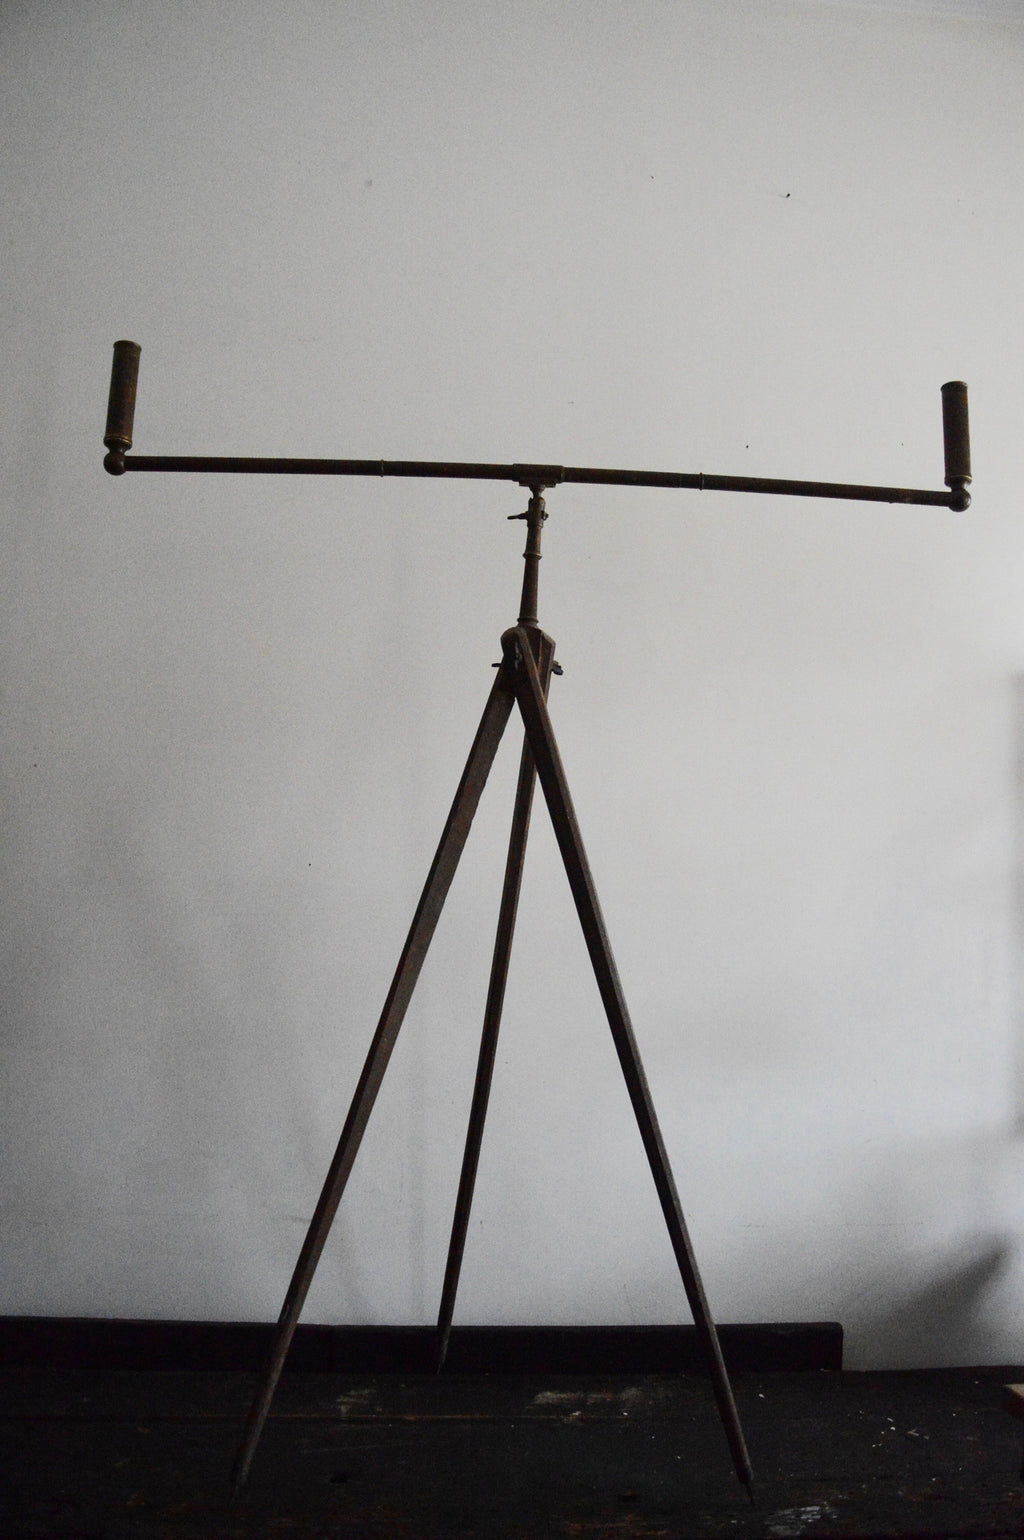 antique spirit burner on tripod